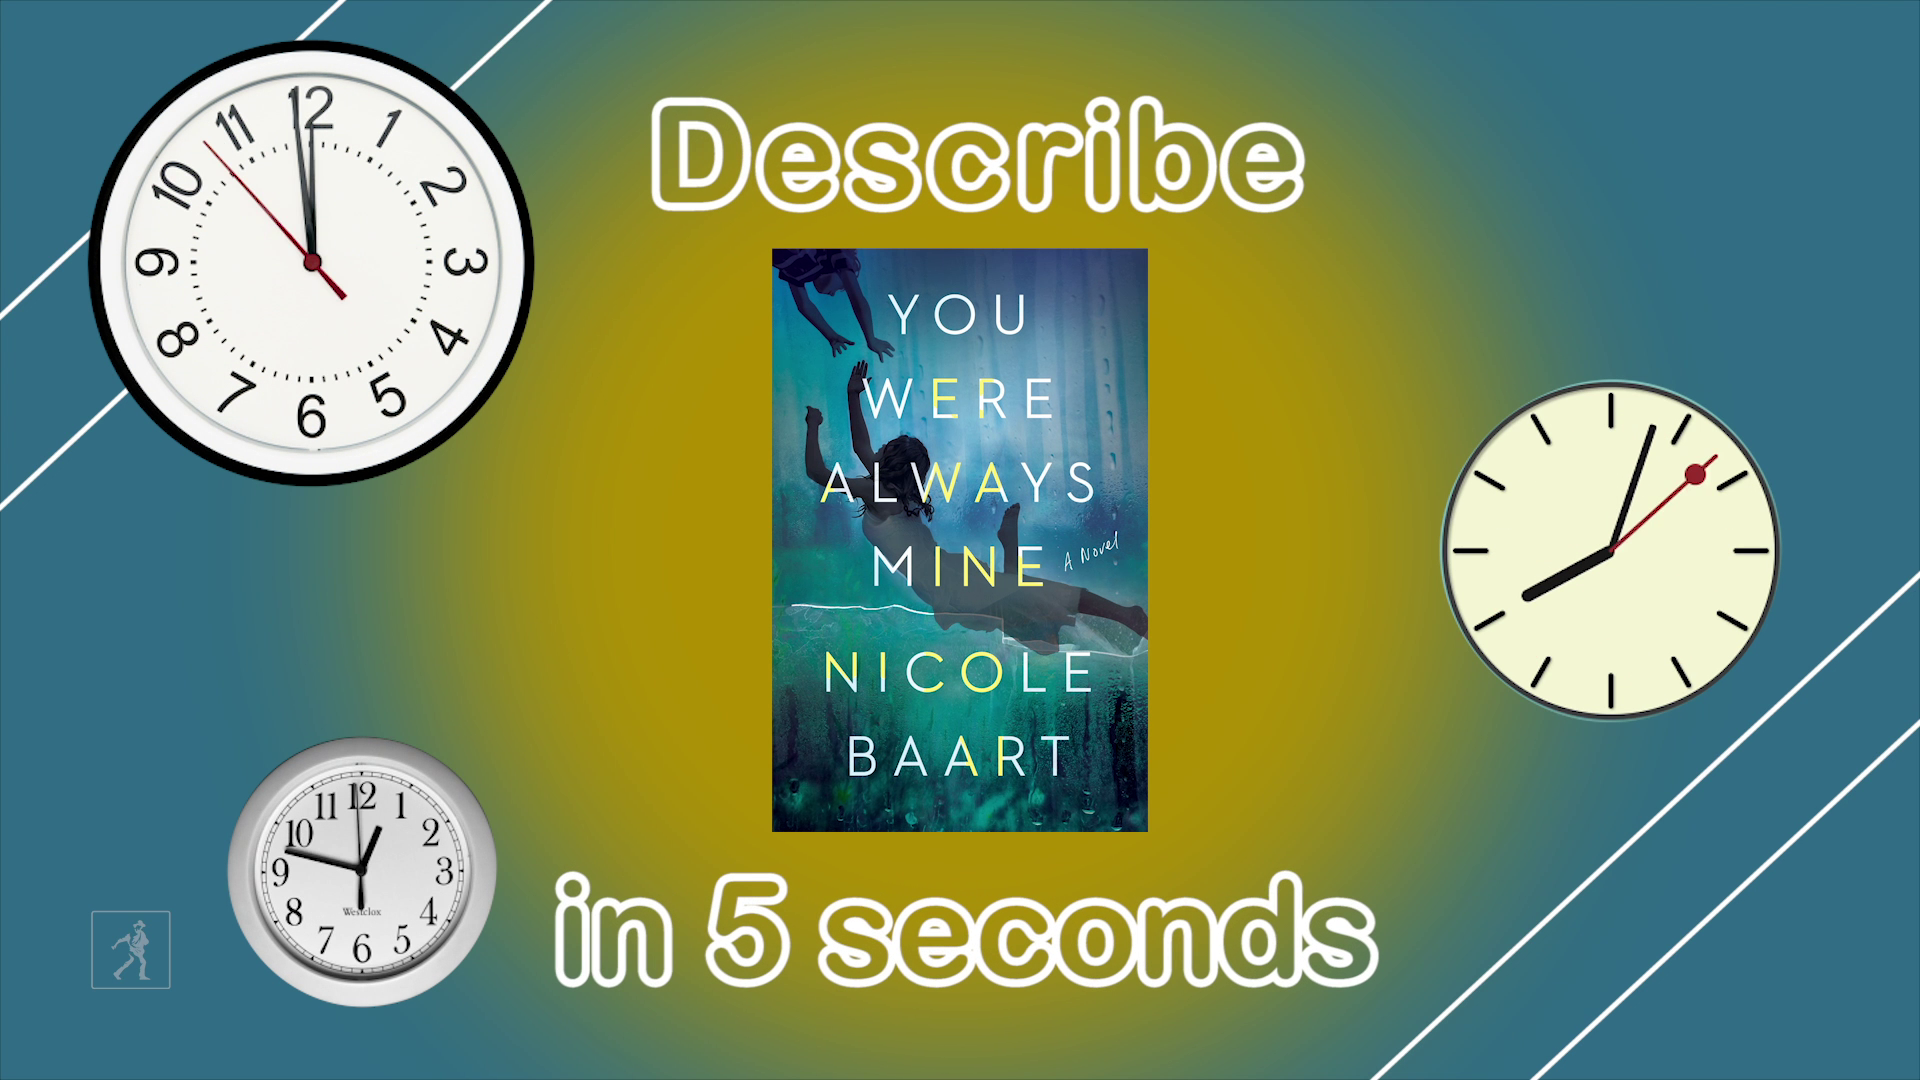 The 5 Second Challenge with Nicole Baart: YOU WERE ALWAYS MINE